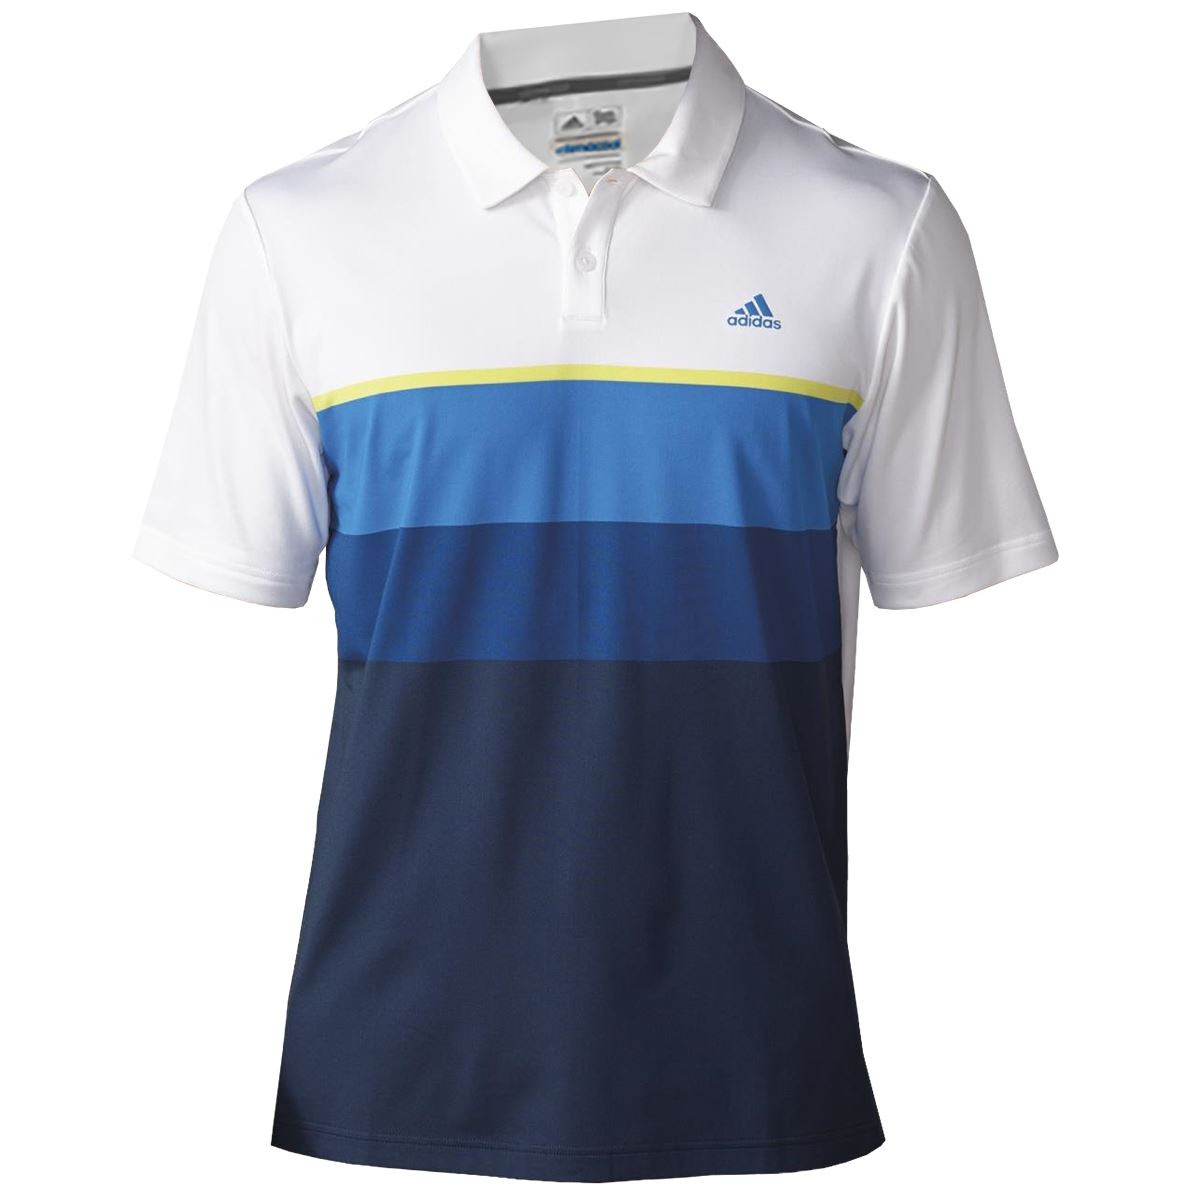 new for 2016 adidas golf mens climacool engineered